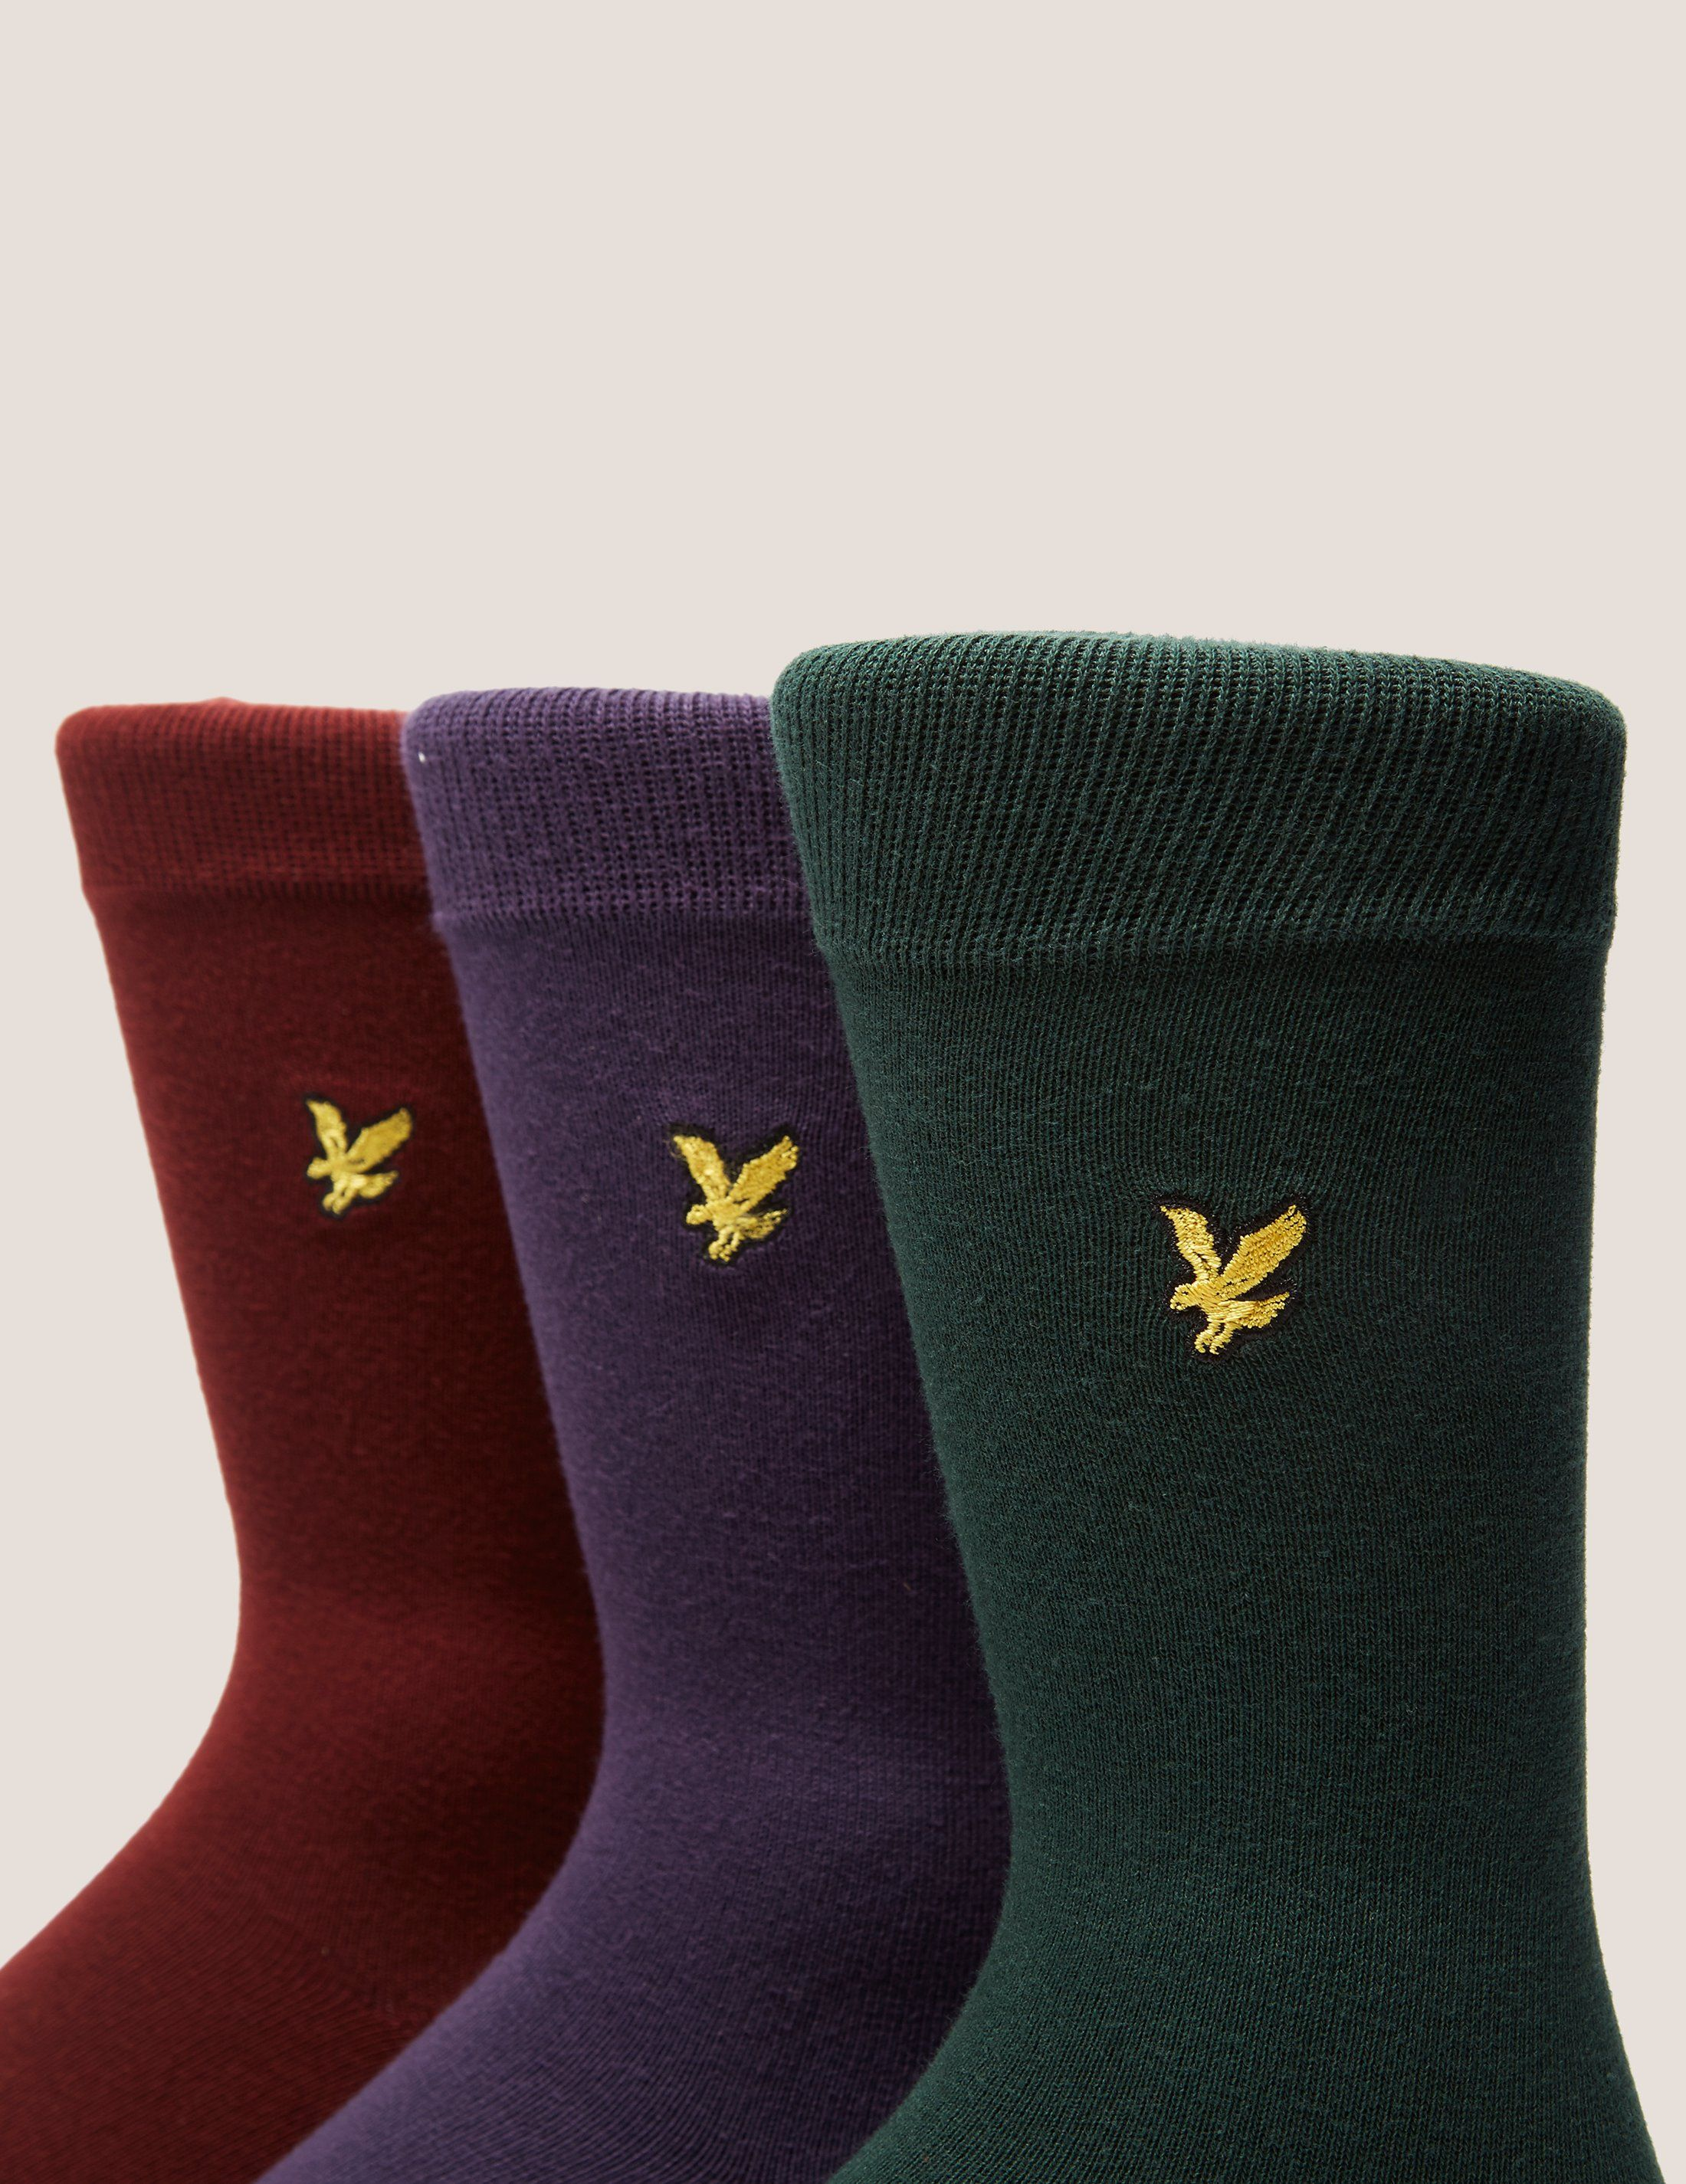 Lyle & Scott 3 Pack Socks